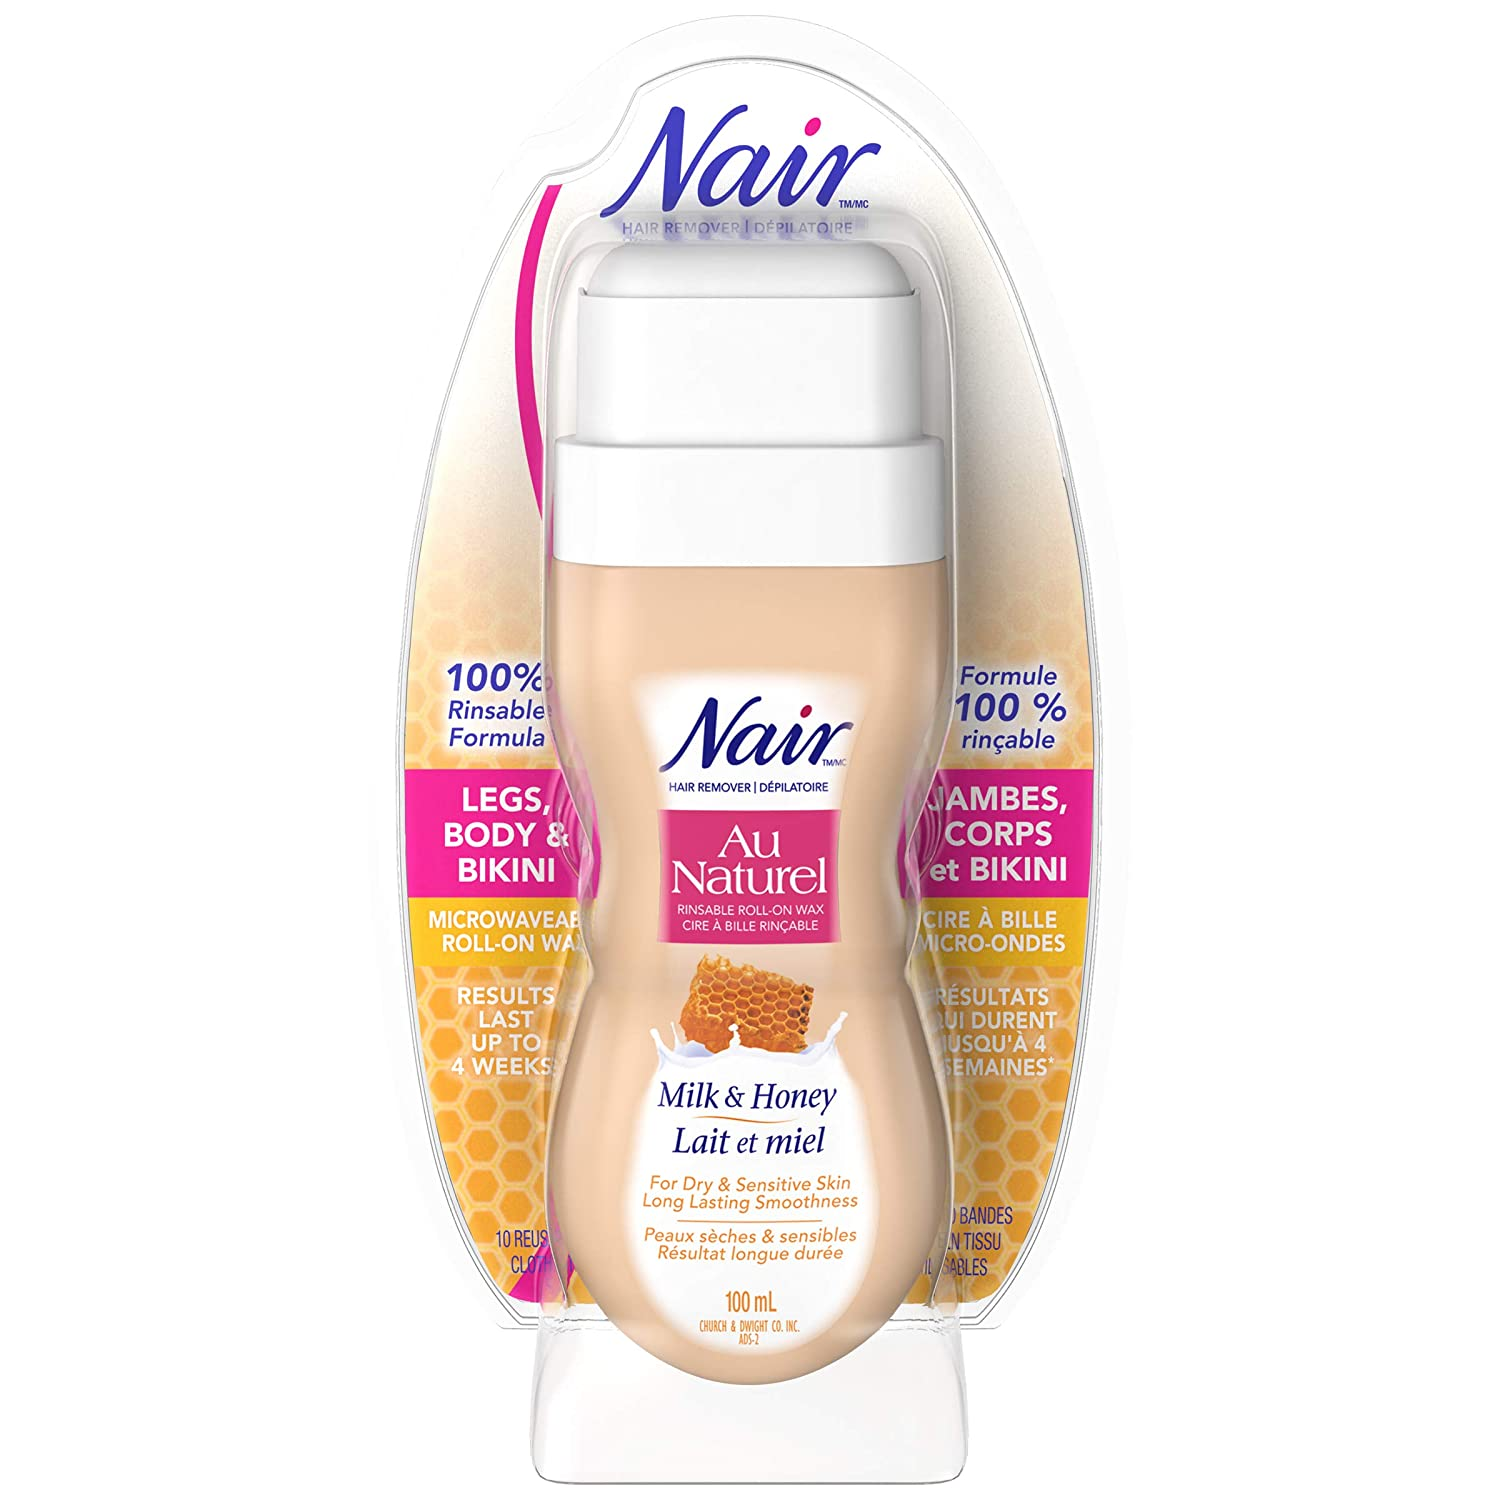 Nair Roll-On Milk and Honey Sugar Wax for Dry & Sensitive Skin 3.4 Ounce/100ml